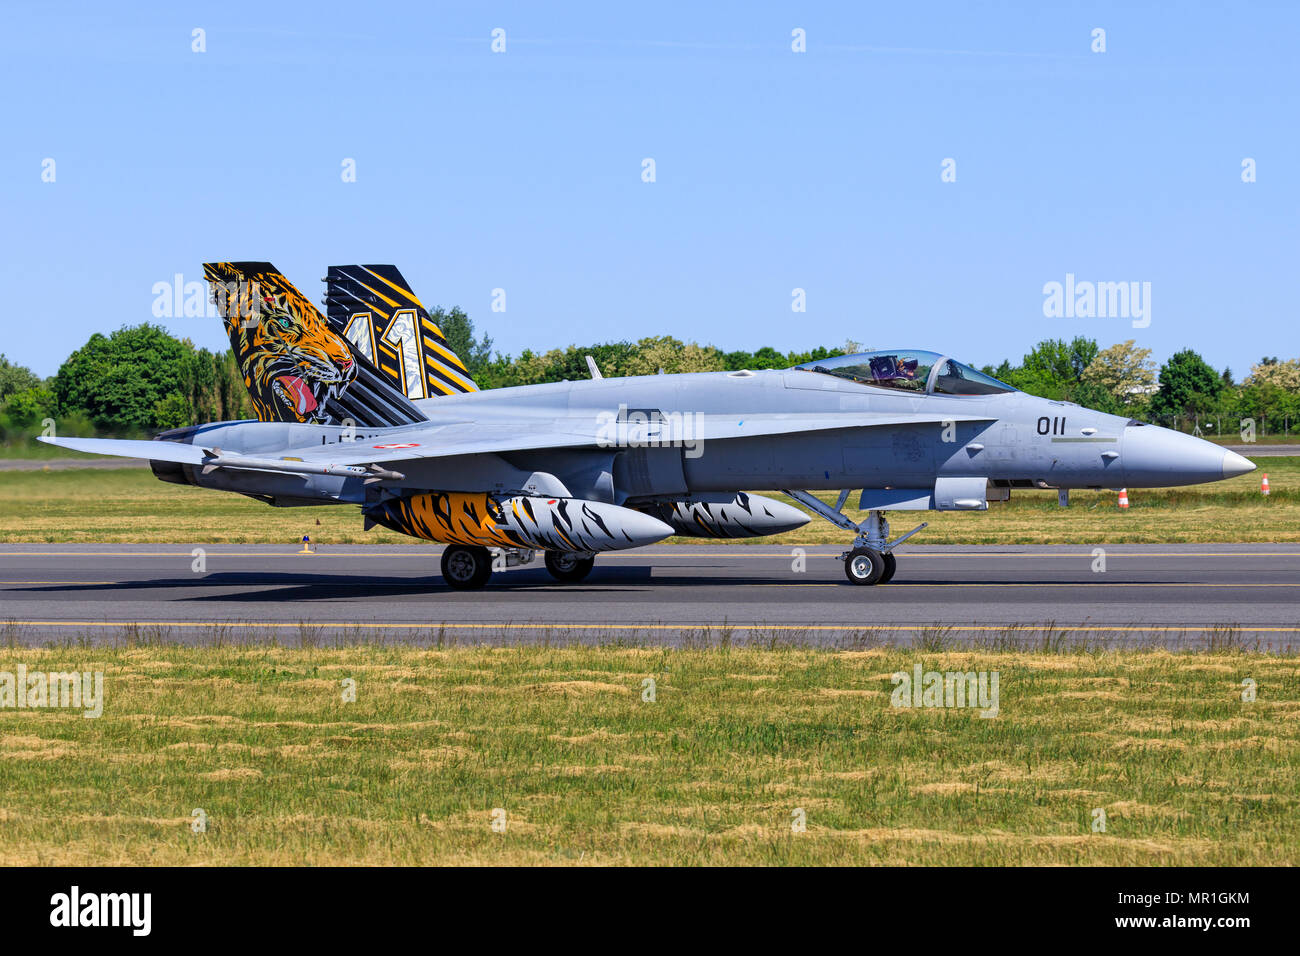 McDonnell Douglas F/A-18C Hornet from Switzerland - Air Force - Stock Image